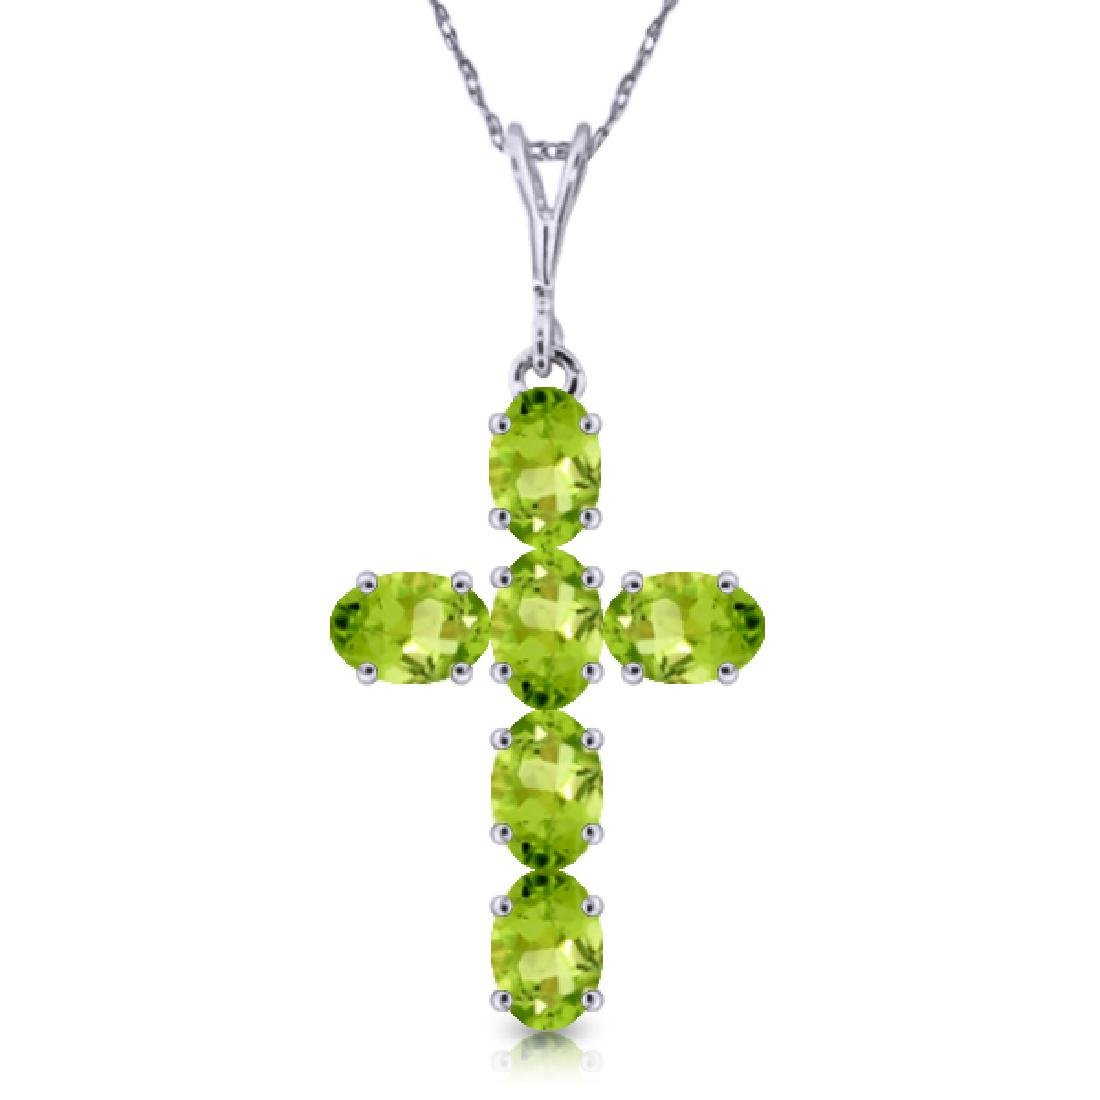 Genuine 1.50 ctw Peridot Necklace Jewelry 14KT White